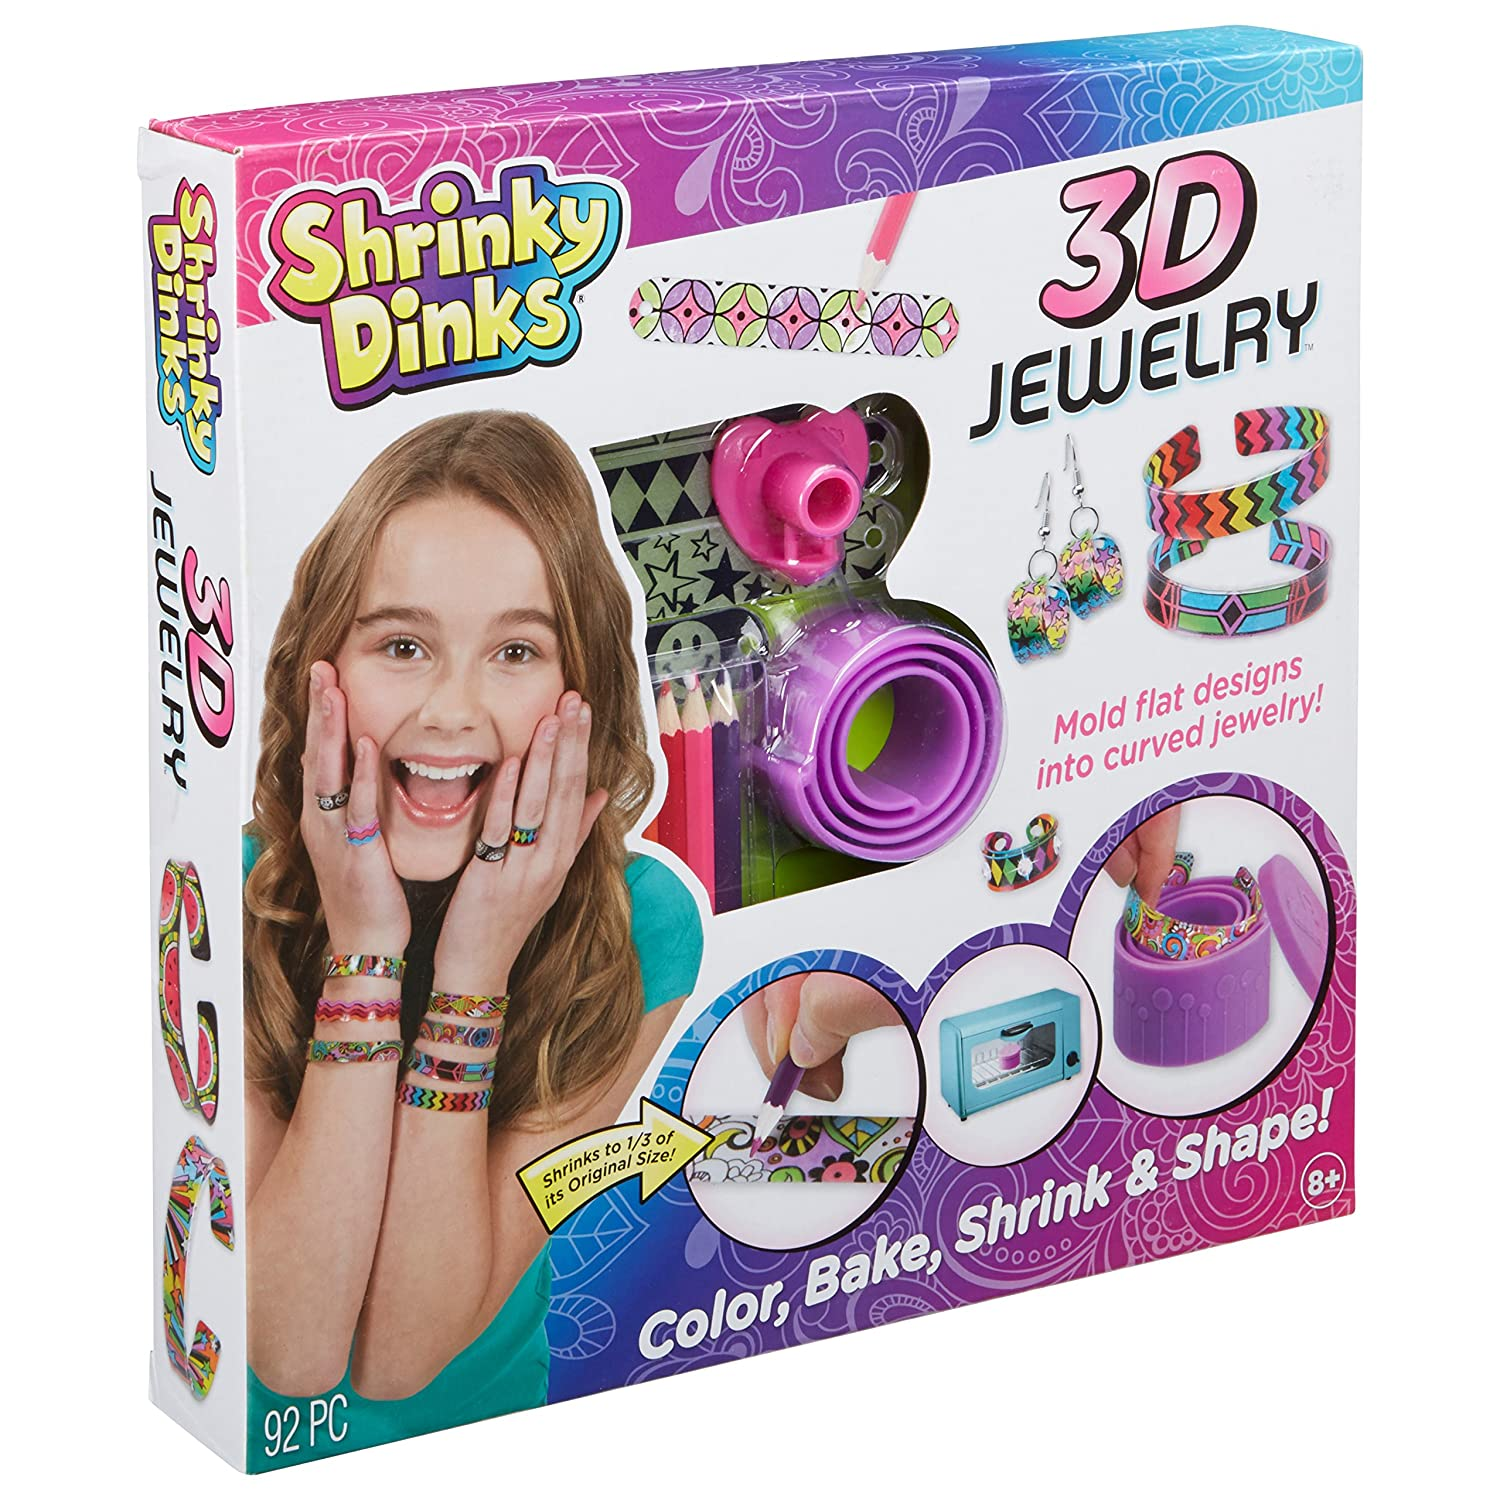 Shrinky Dinks Bake and Shape 3D Jewelry Alex Toys 499w Accessory Consumer Accessories